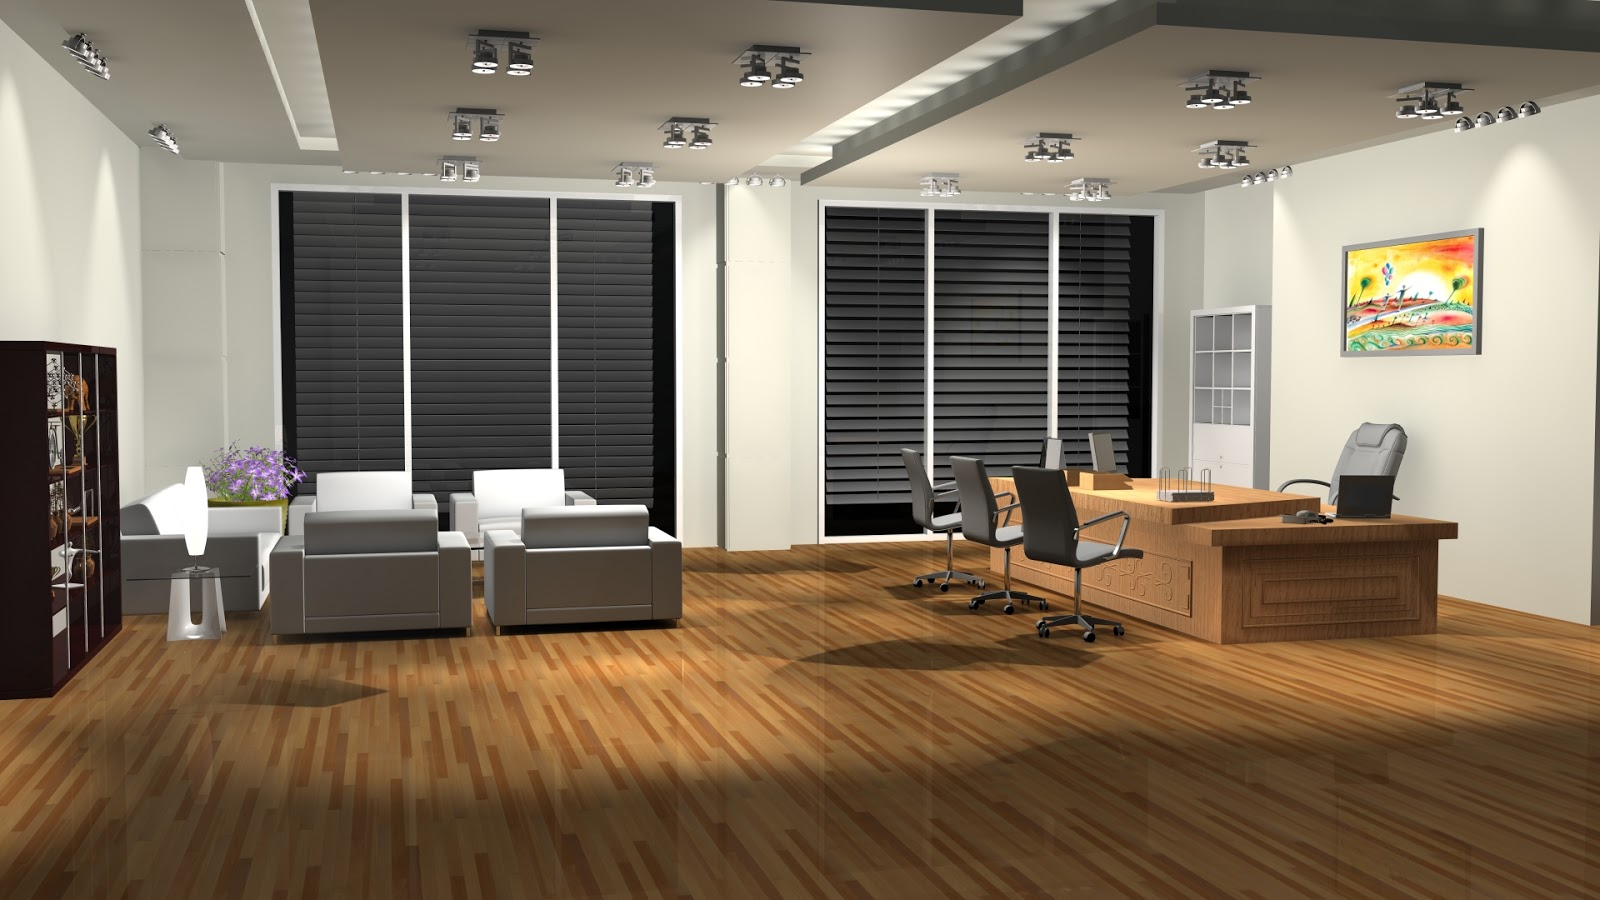 Office room 3d interior design 3ds max